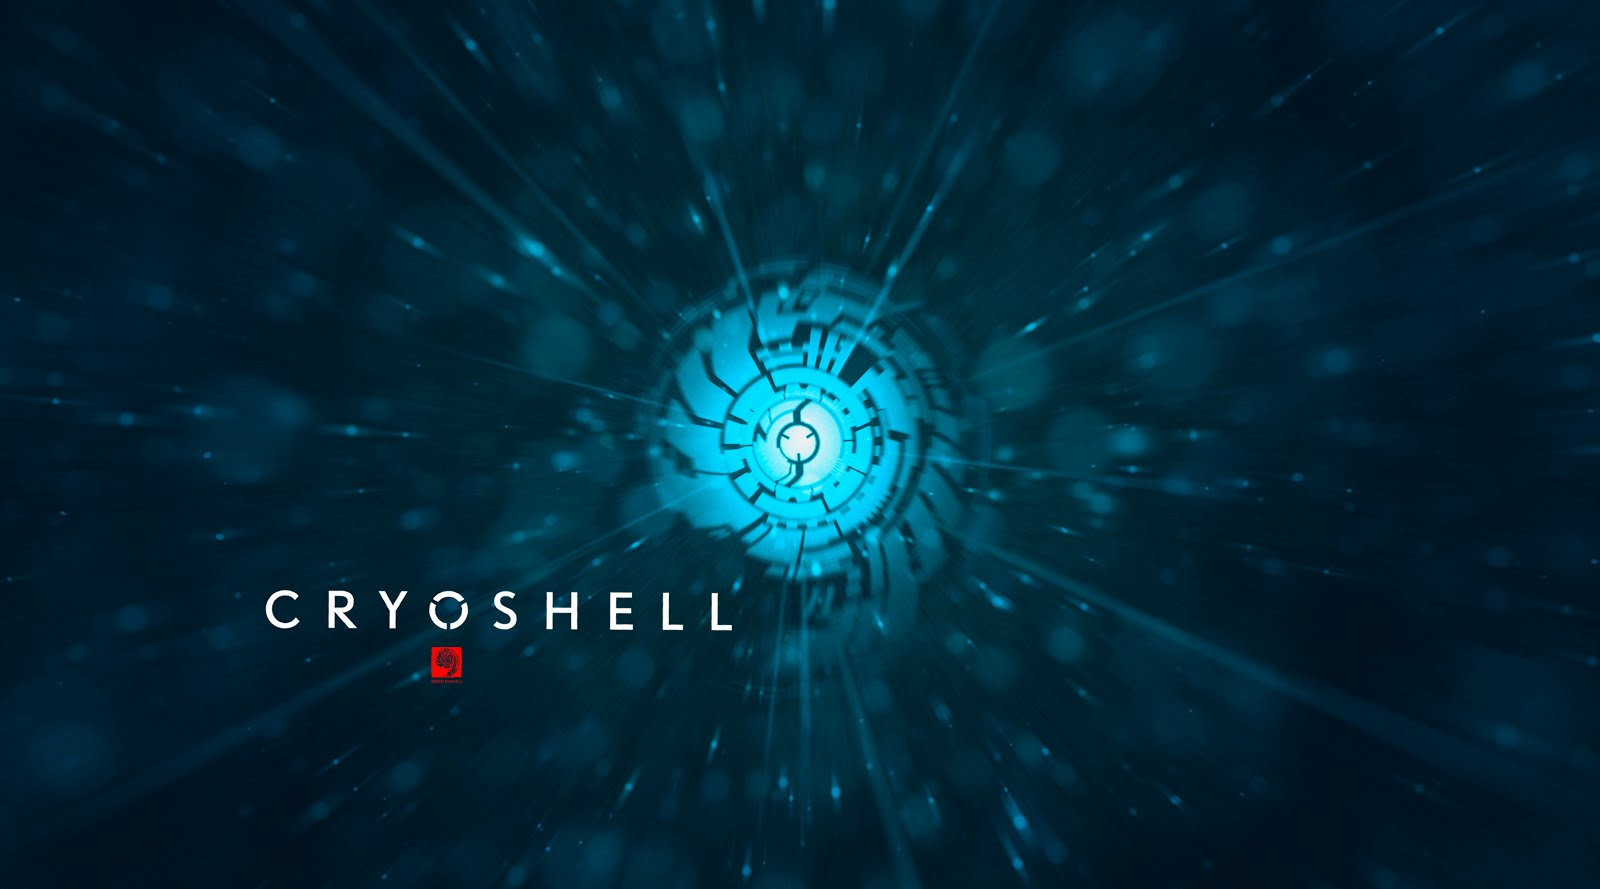 Next to Cryoshell